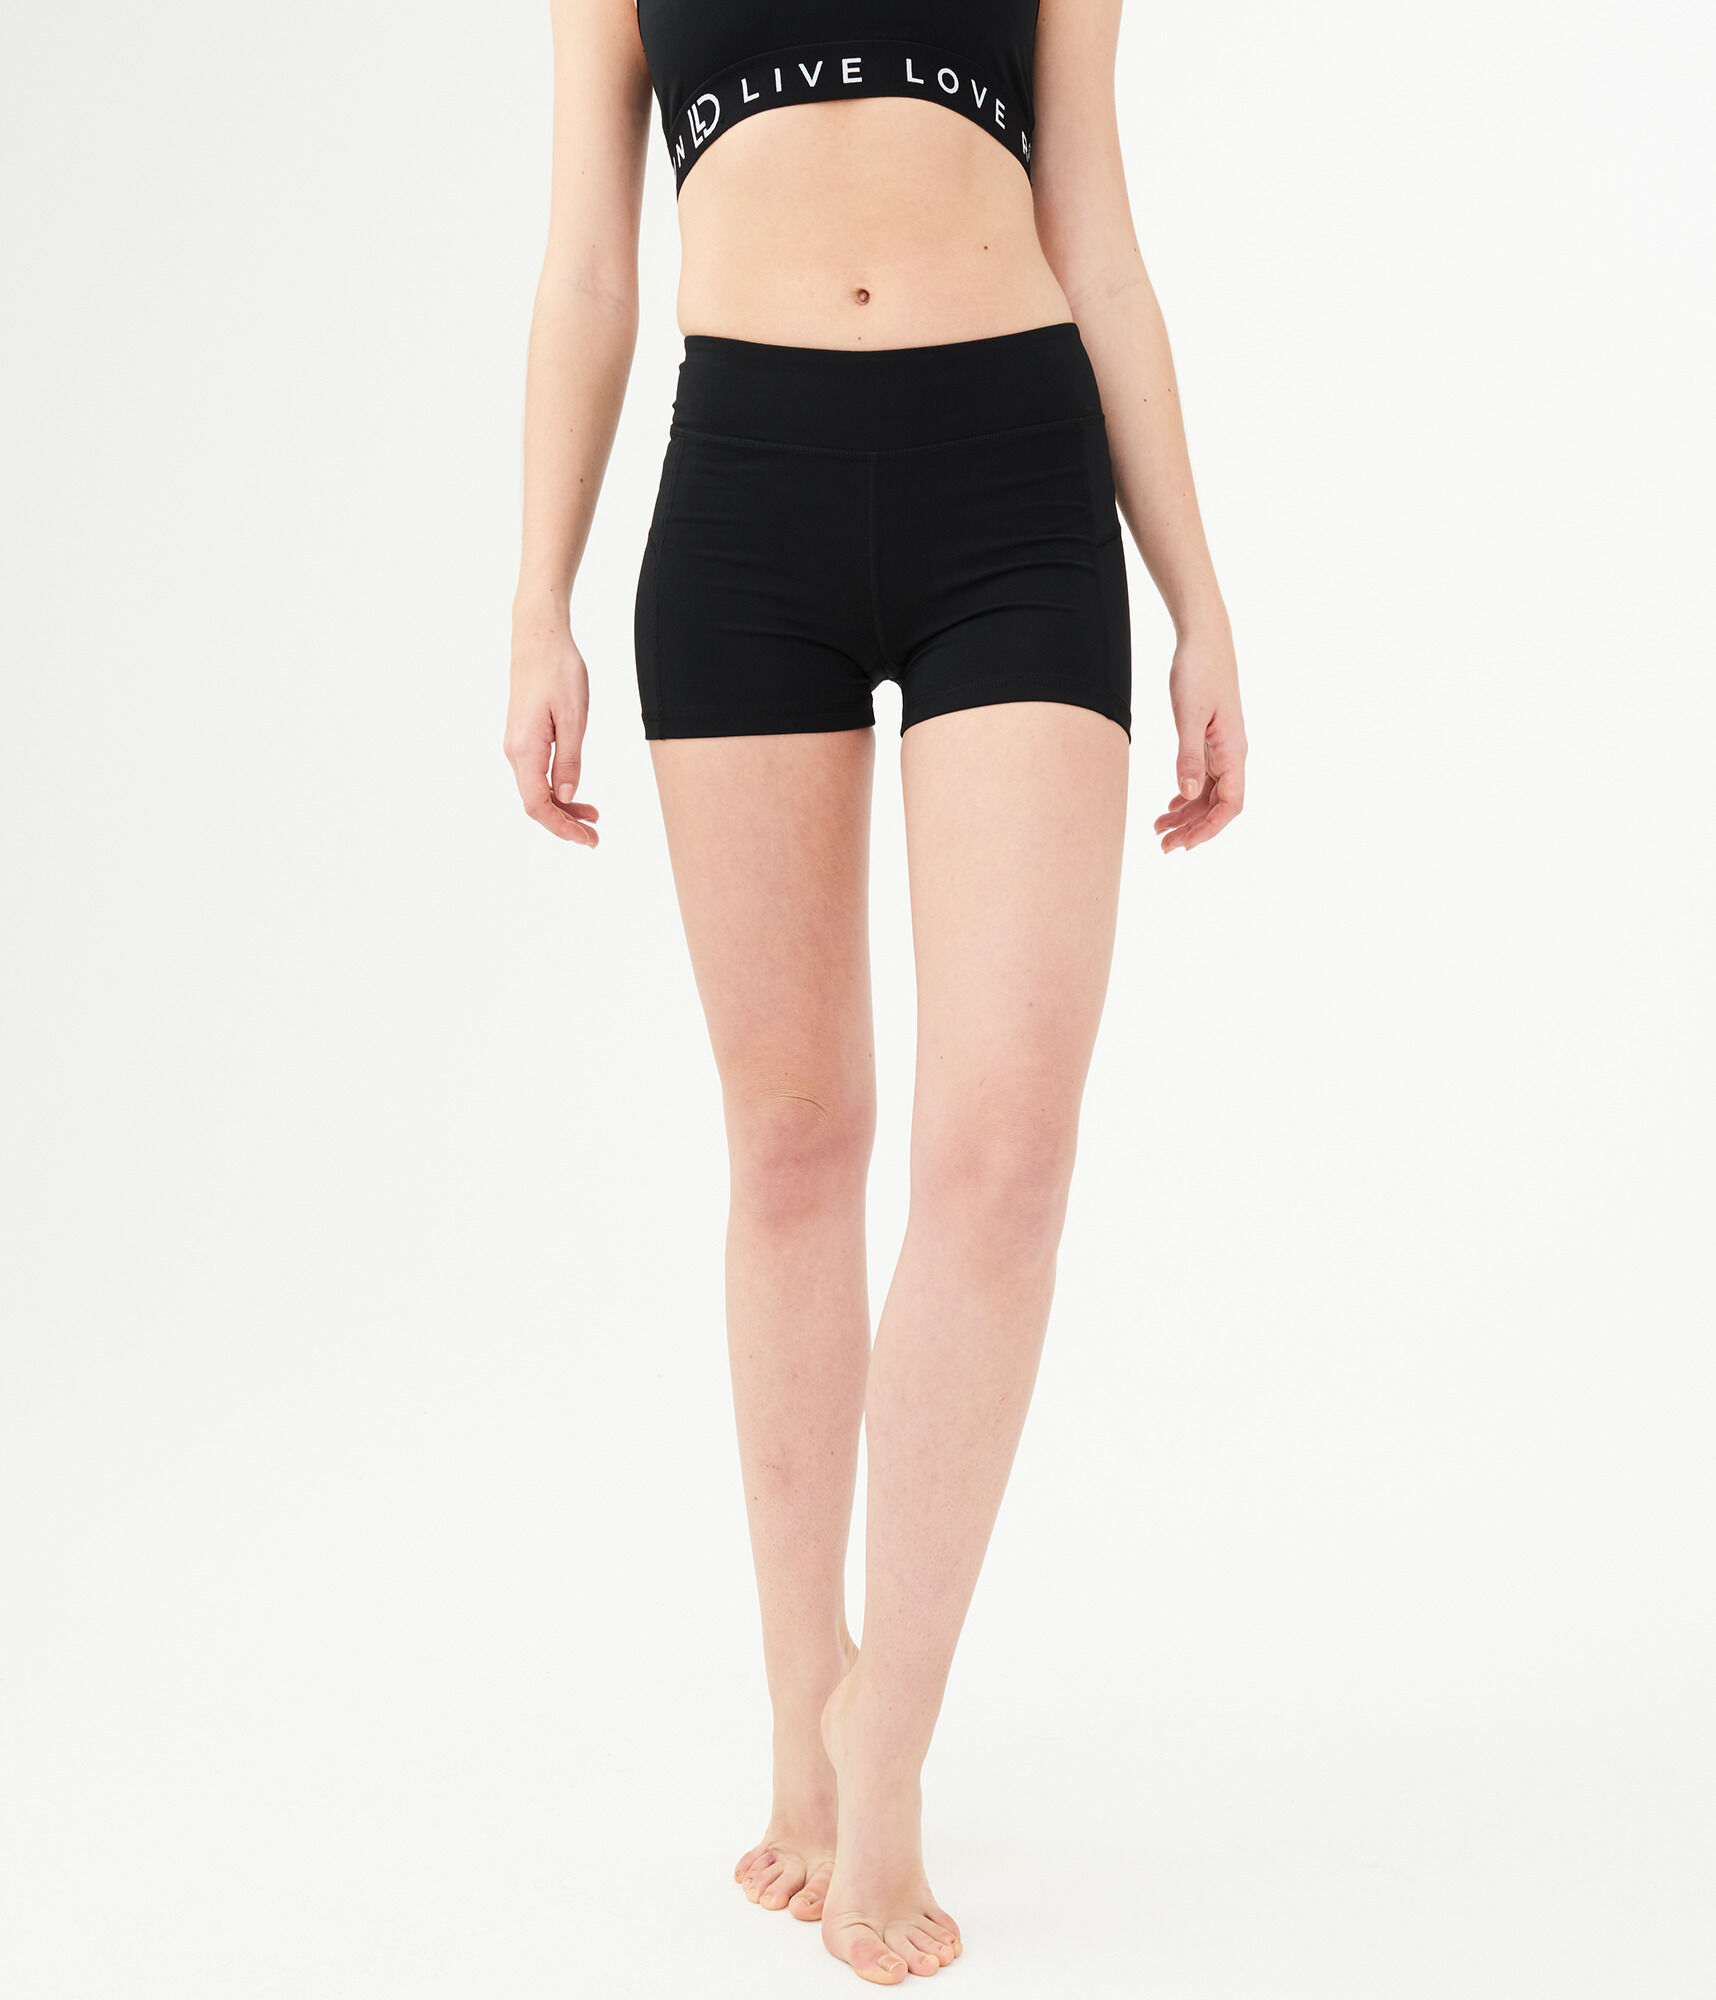 Womens Black Volleyball Shorts  Aeropostale-4969